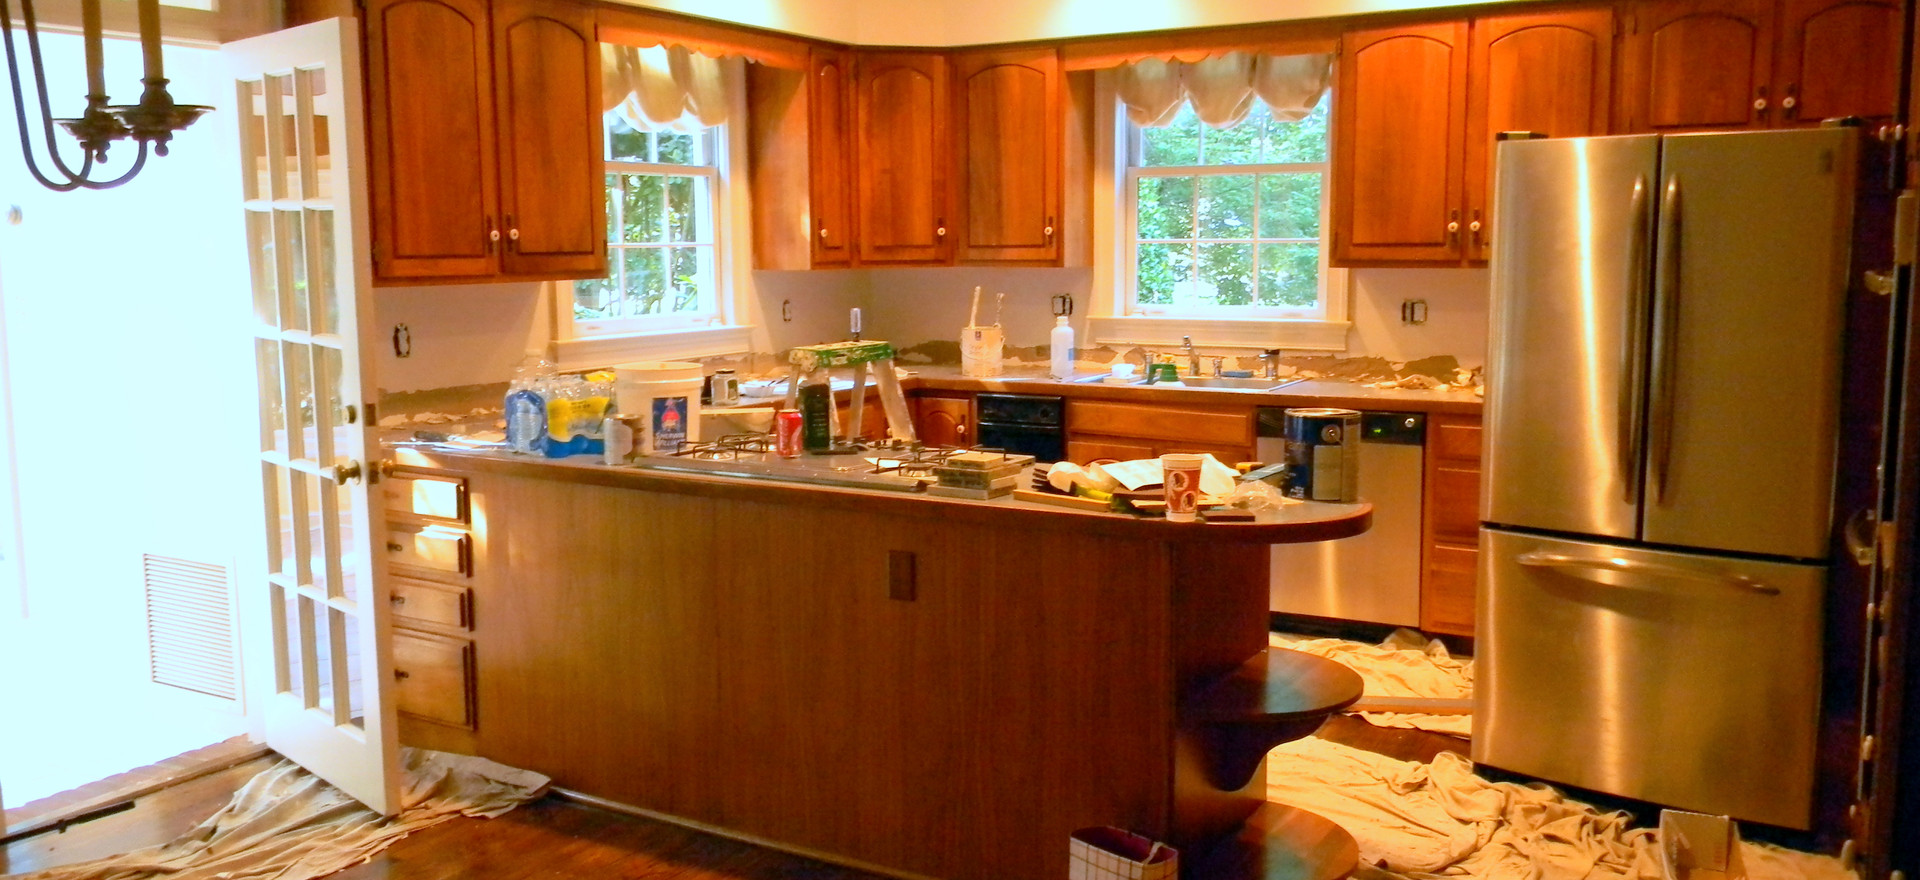 Kitchen before painting